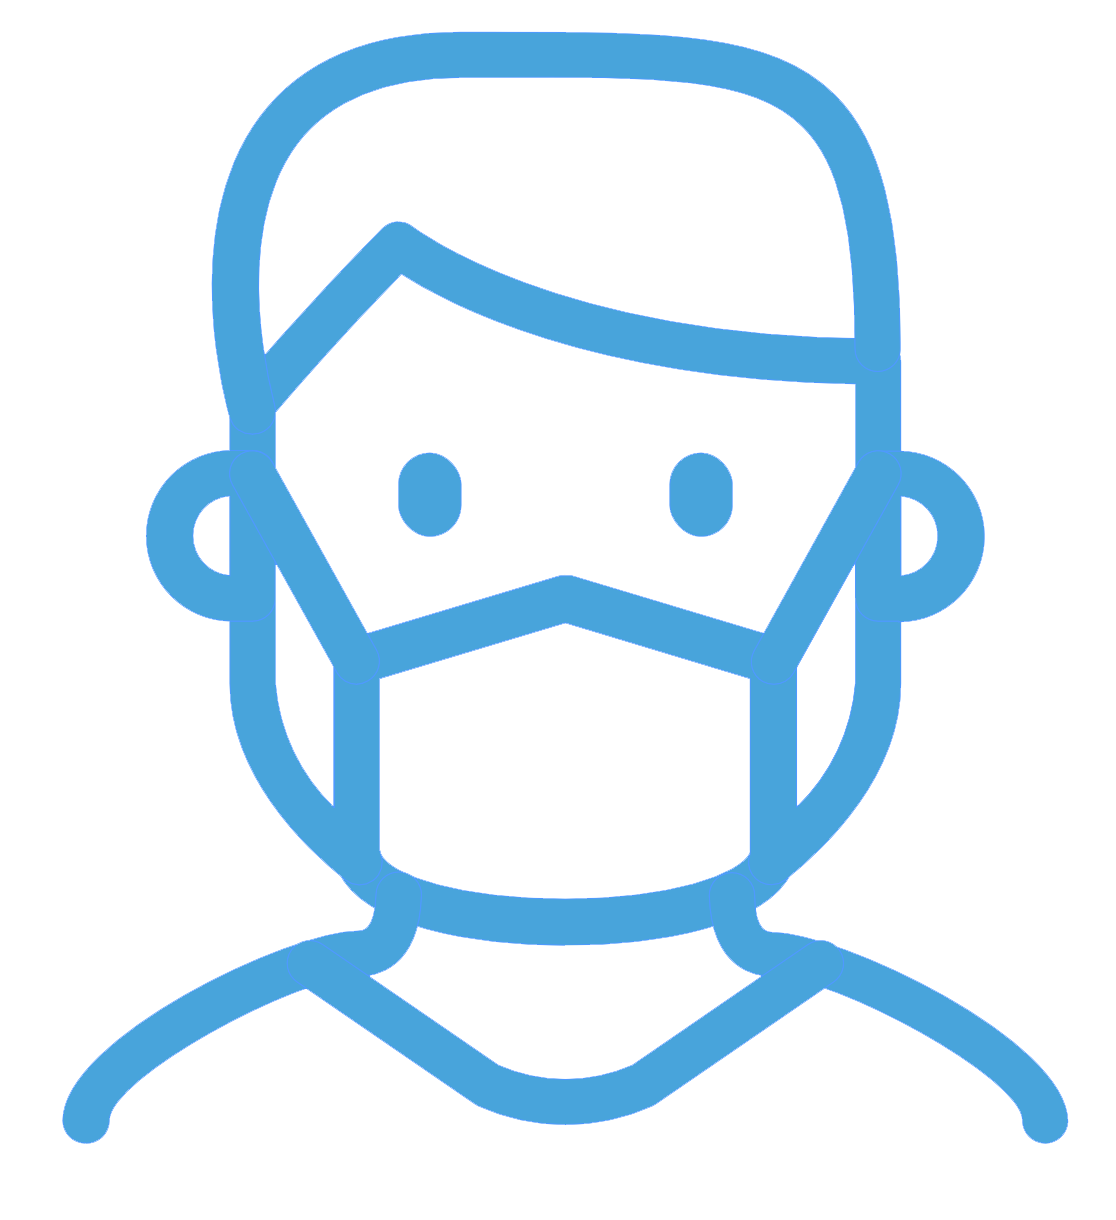 Icon of a person wearing a mask